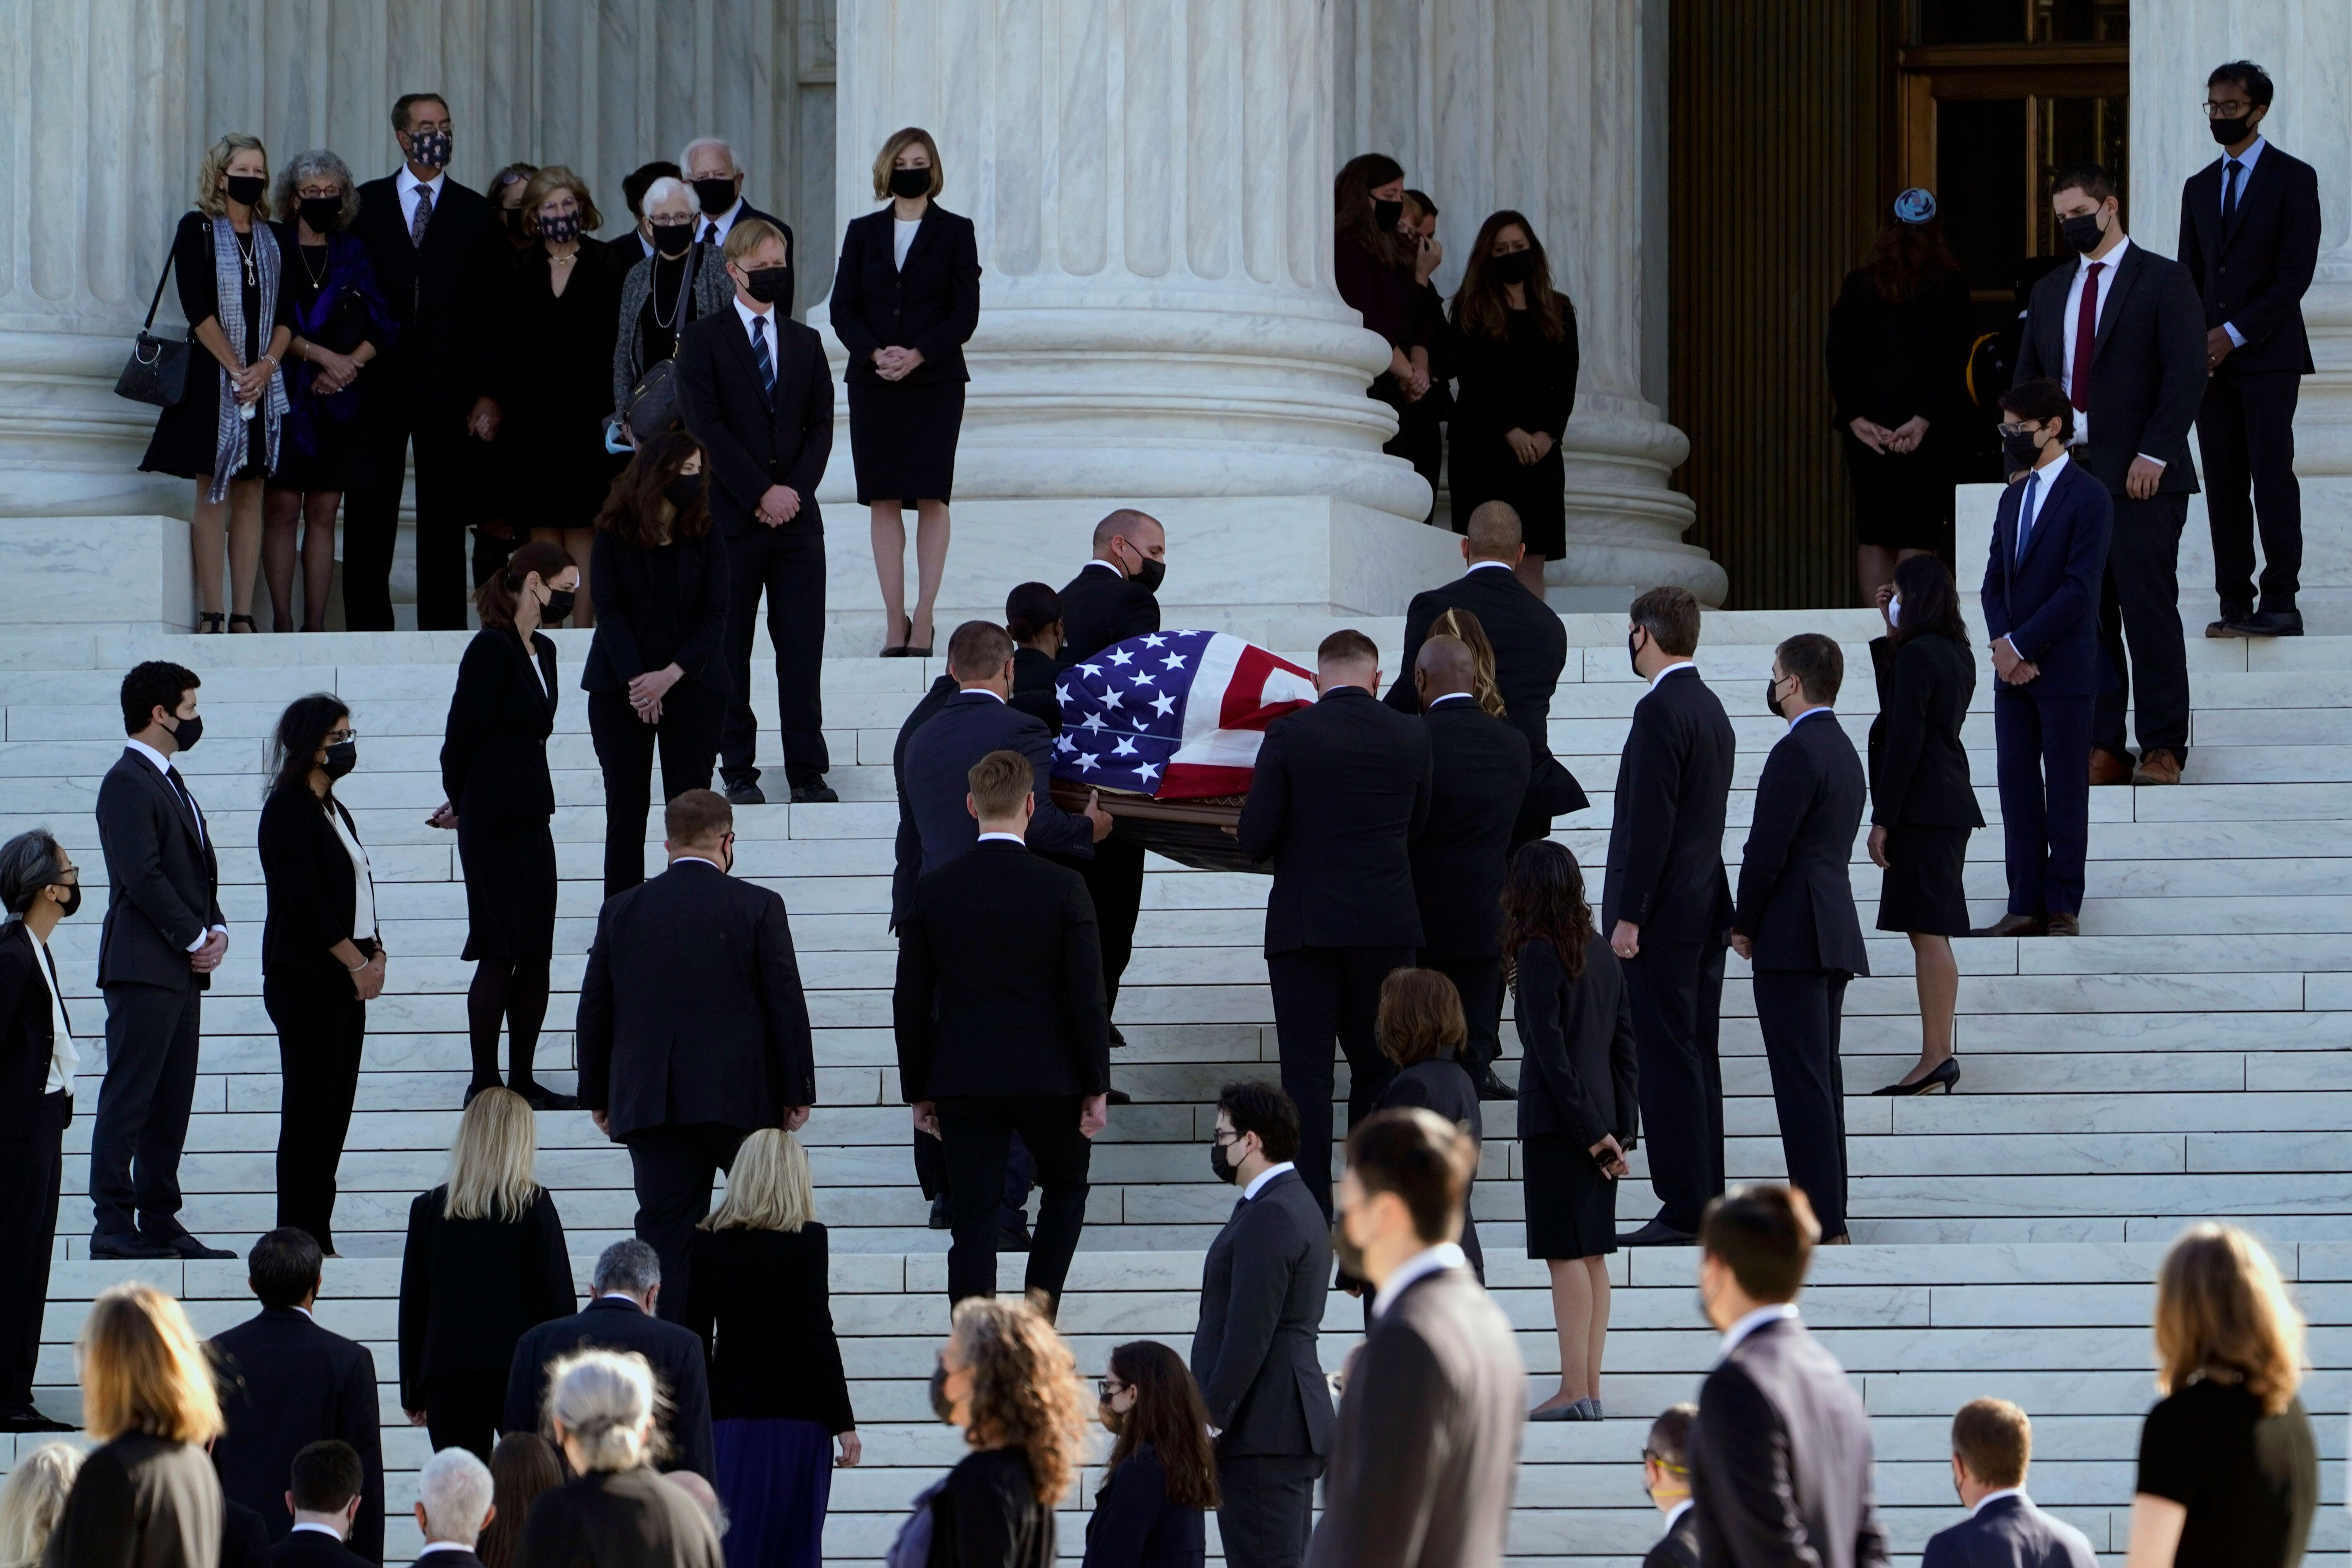 The flag-draped casket of Justice Ruth Bader Ginsburg is carried up the steps of the Supreme Court in Washington, Wednesday,